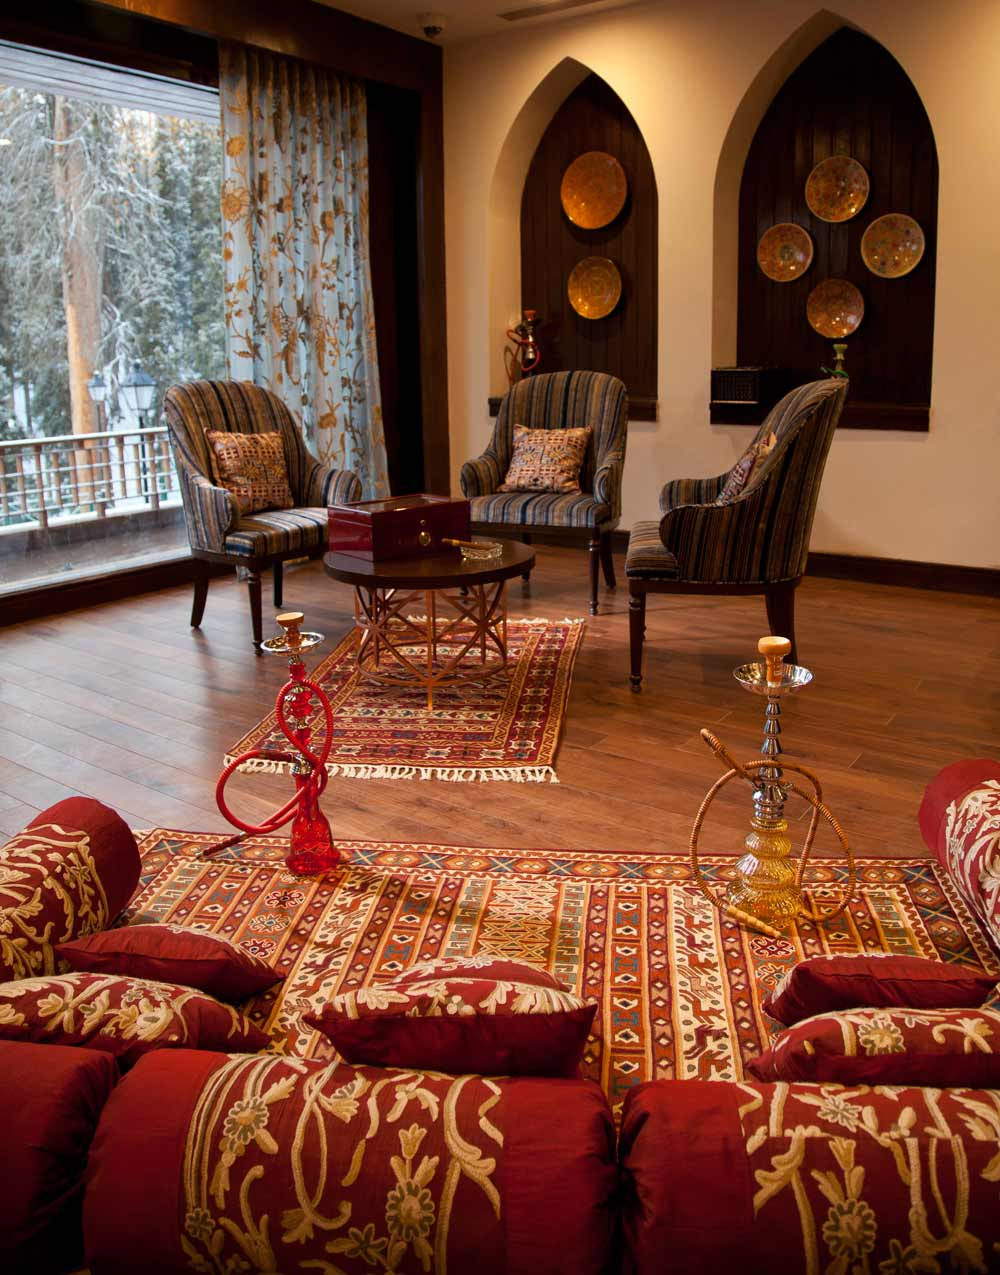 Sitting Room at Khyber Himalayan Resort and Spa